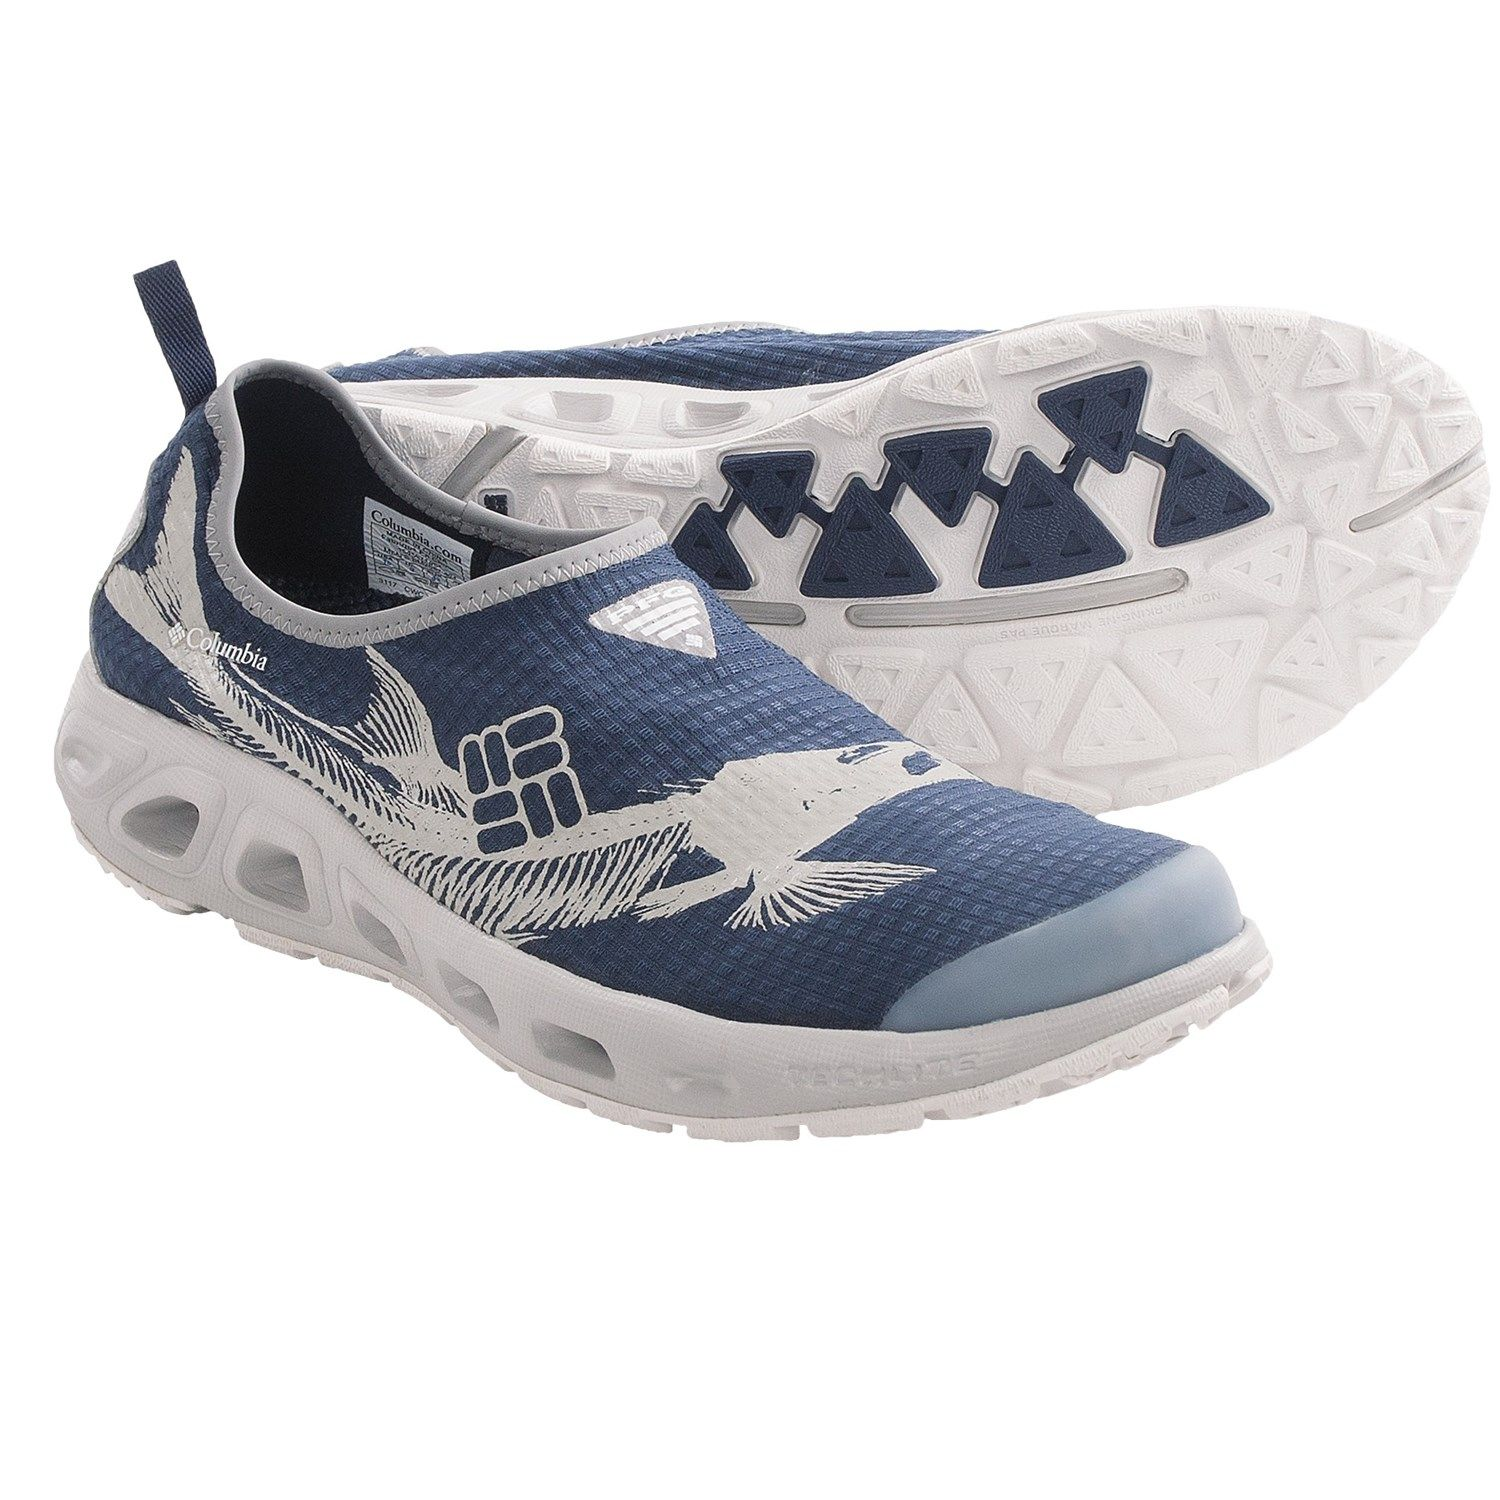 Columbia Sportswear Ventsock Pfg Water Shoes For Men In Collegiate Navy Cool Grey